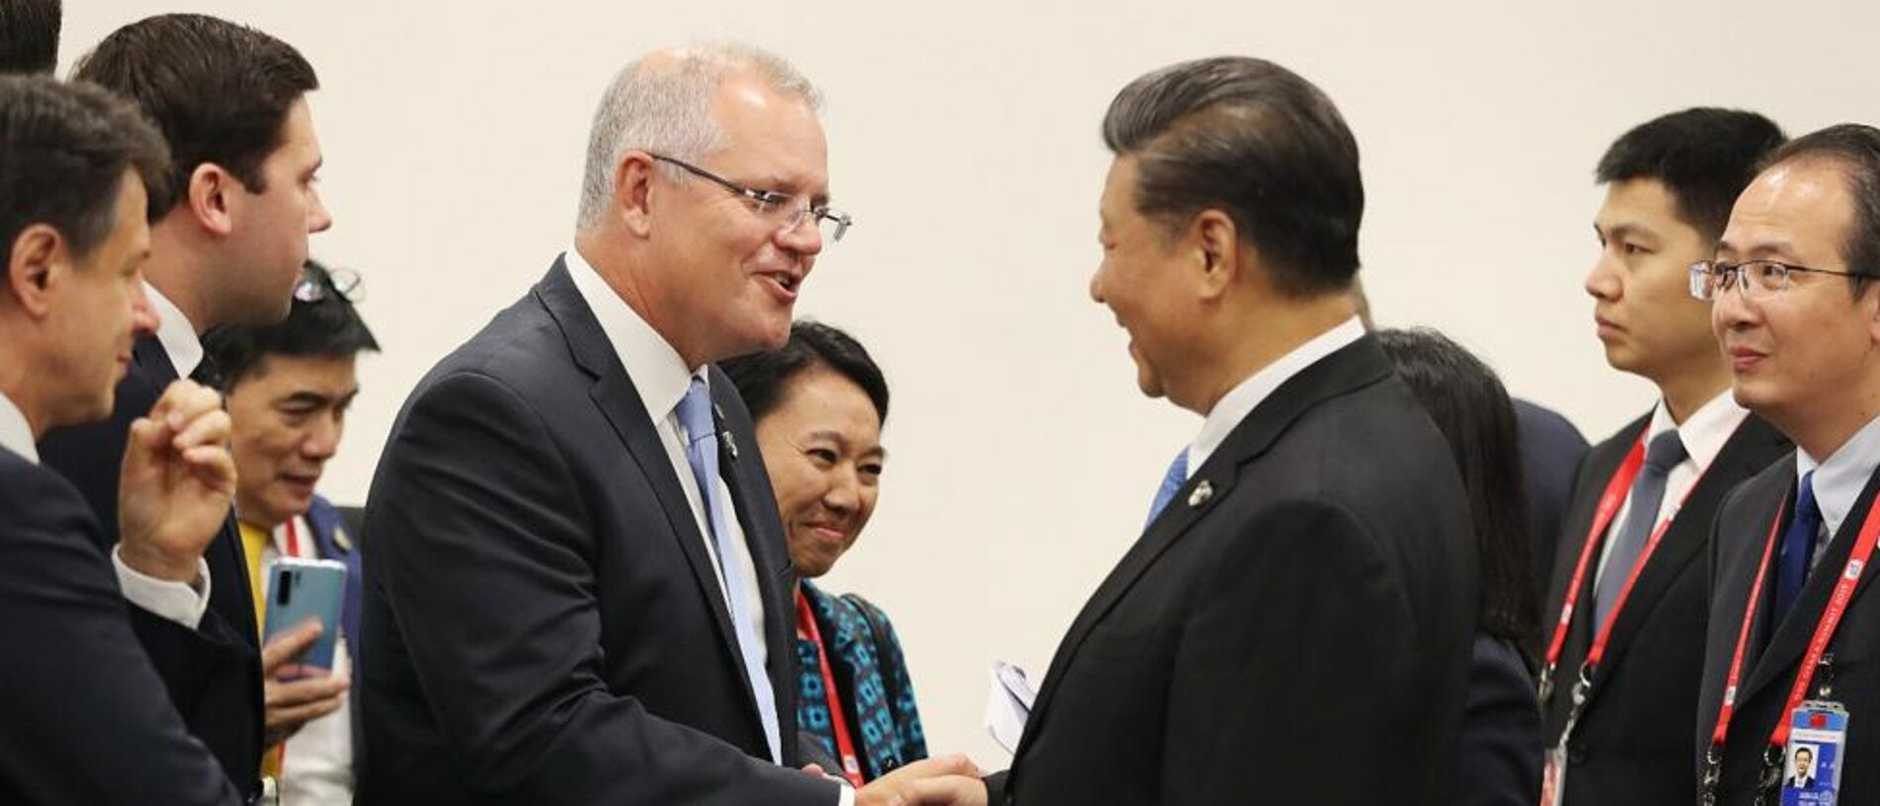 The PM with President Xi Jinping at the G20 earlier this year